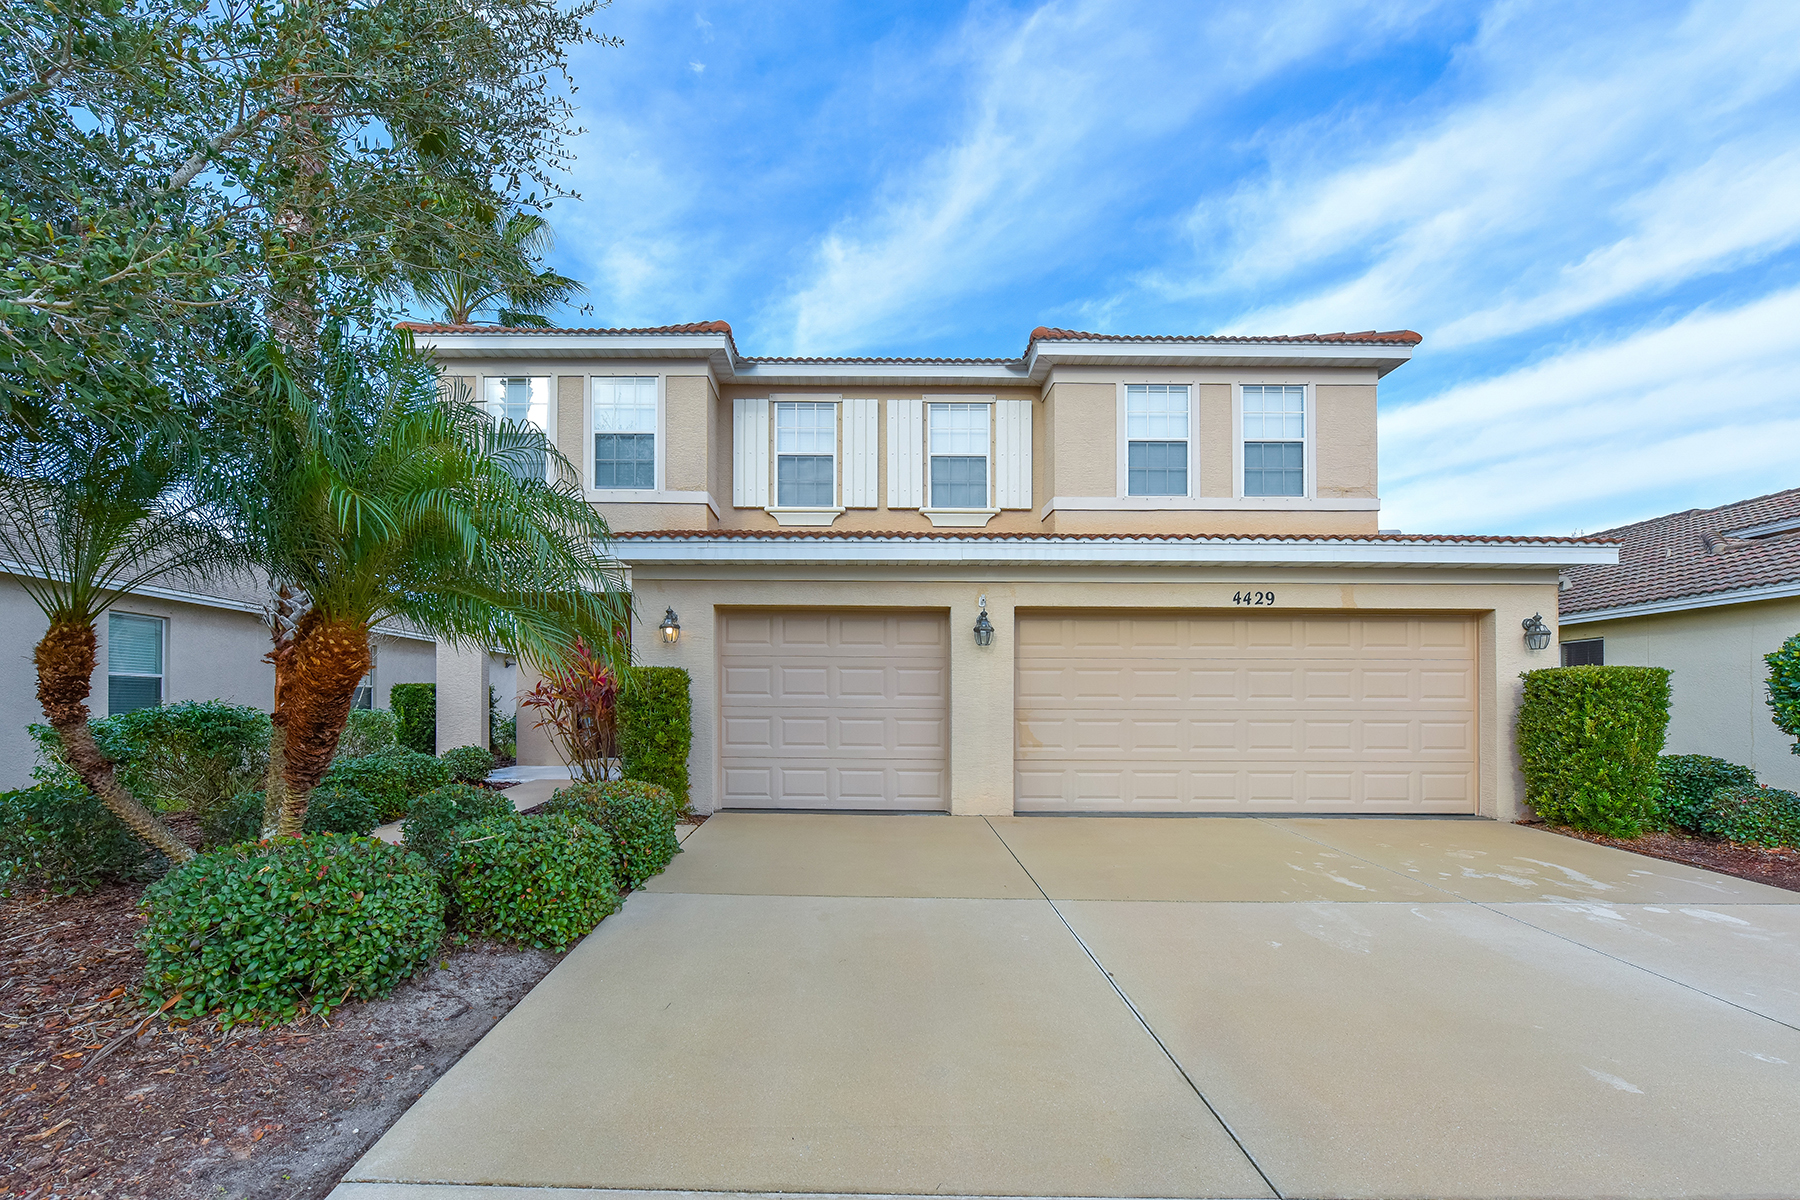 Single Family Home for Sale at CROSSING VILLAGE 4429 67th St E Bradenton, Florida, 34203 United States